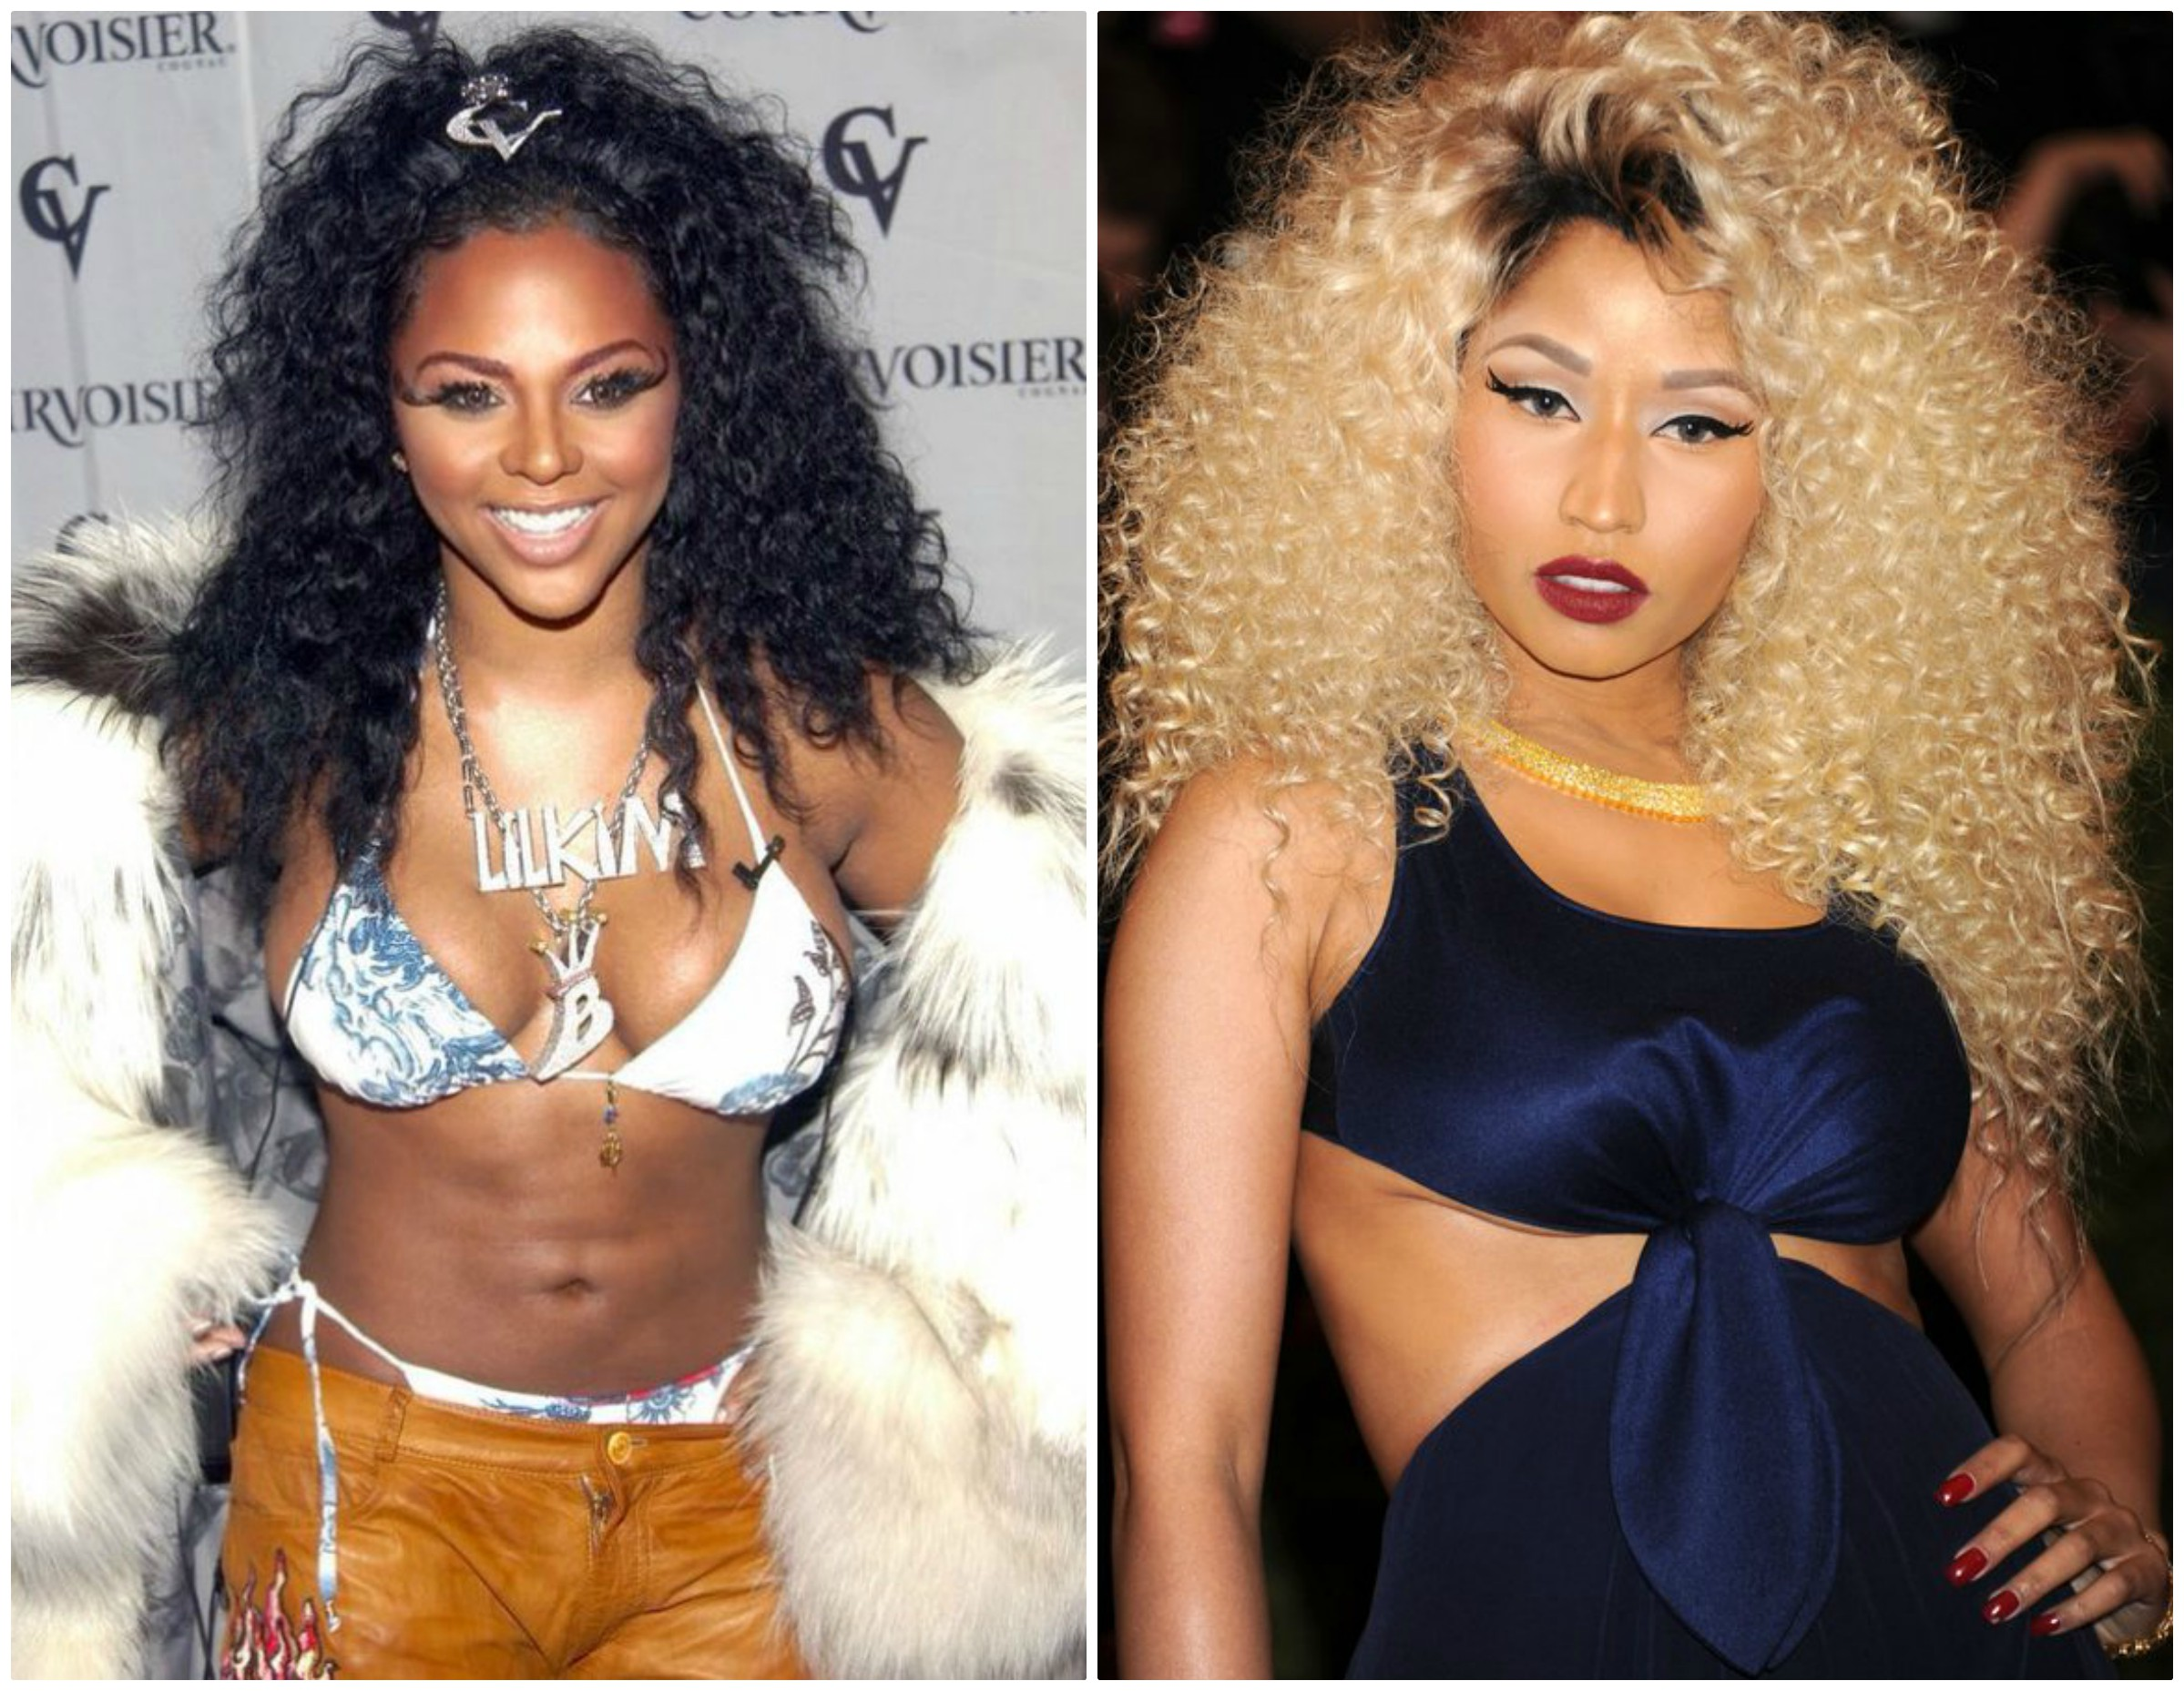 usher-says-nicki-minaj-is-a product-of-lil-kim